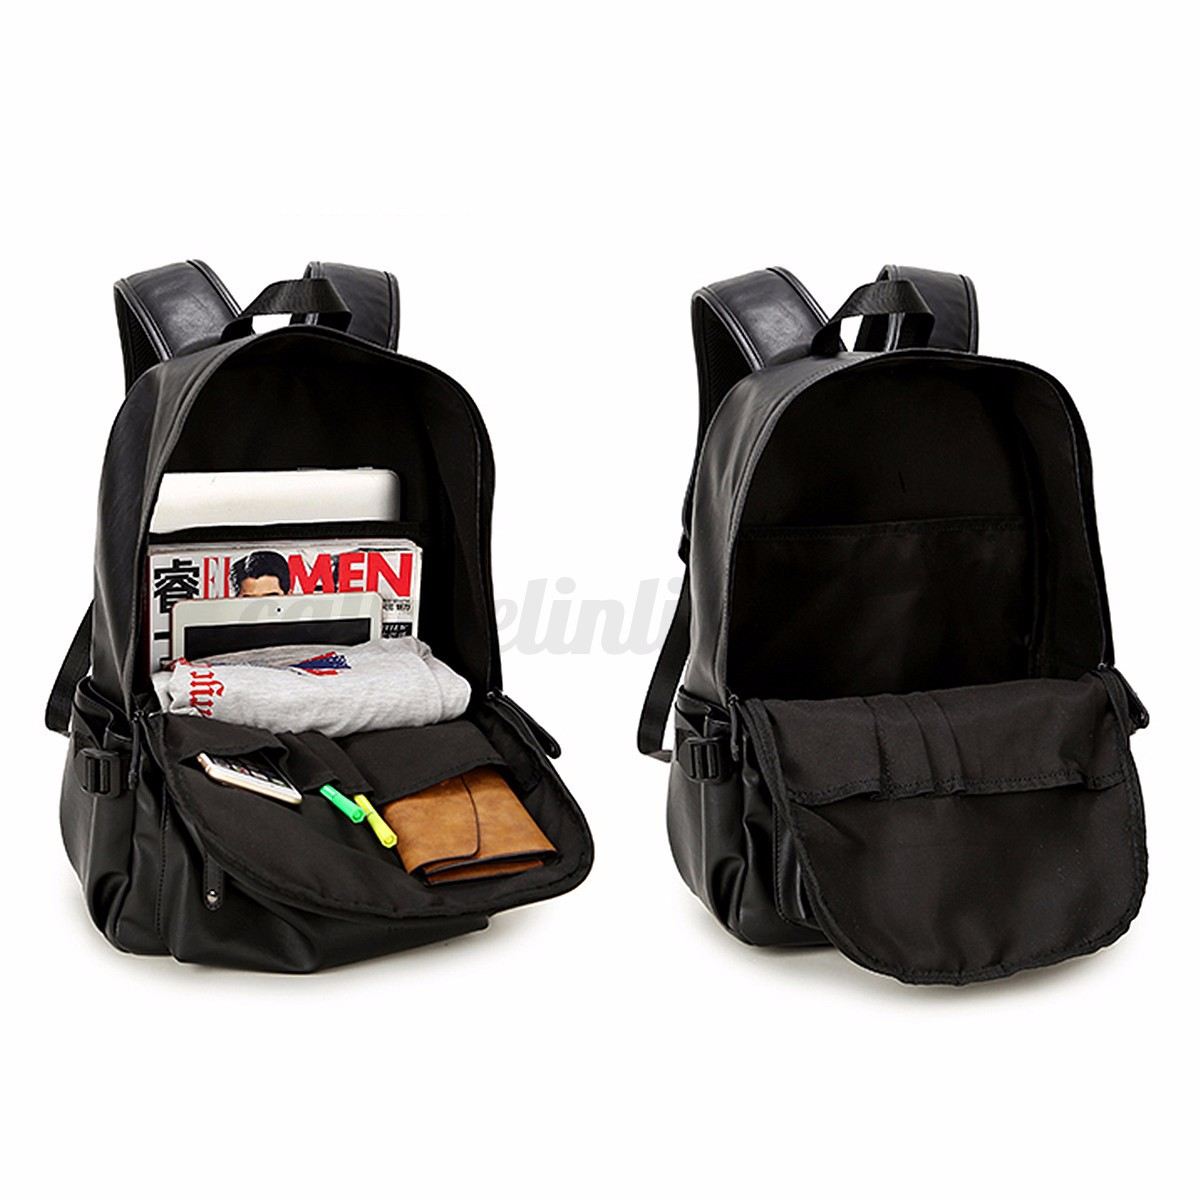 Laptop Satchel Sky Bangtan Daypack Bags BTS Schoolbag Backpack Multicolor Starry Casual Kpop Boys XvgYfx The following represents Illinois Pattern Civil Jury Instructions, drafted by the Supreme Court Committee on Jury Instructions in Civil Cases.